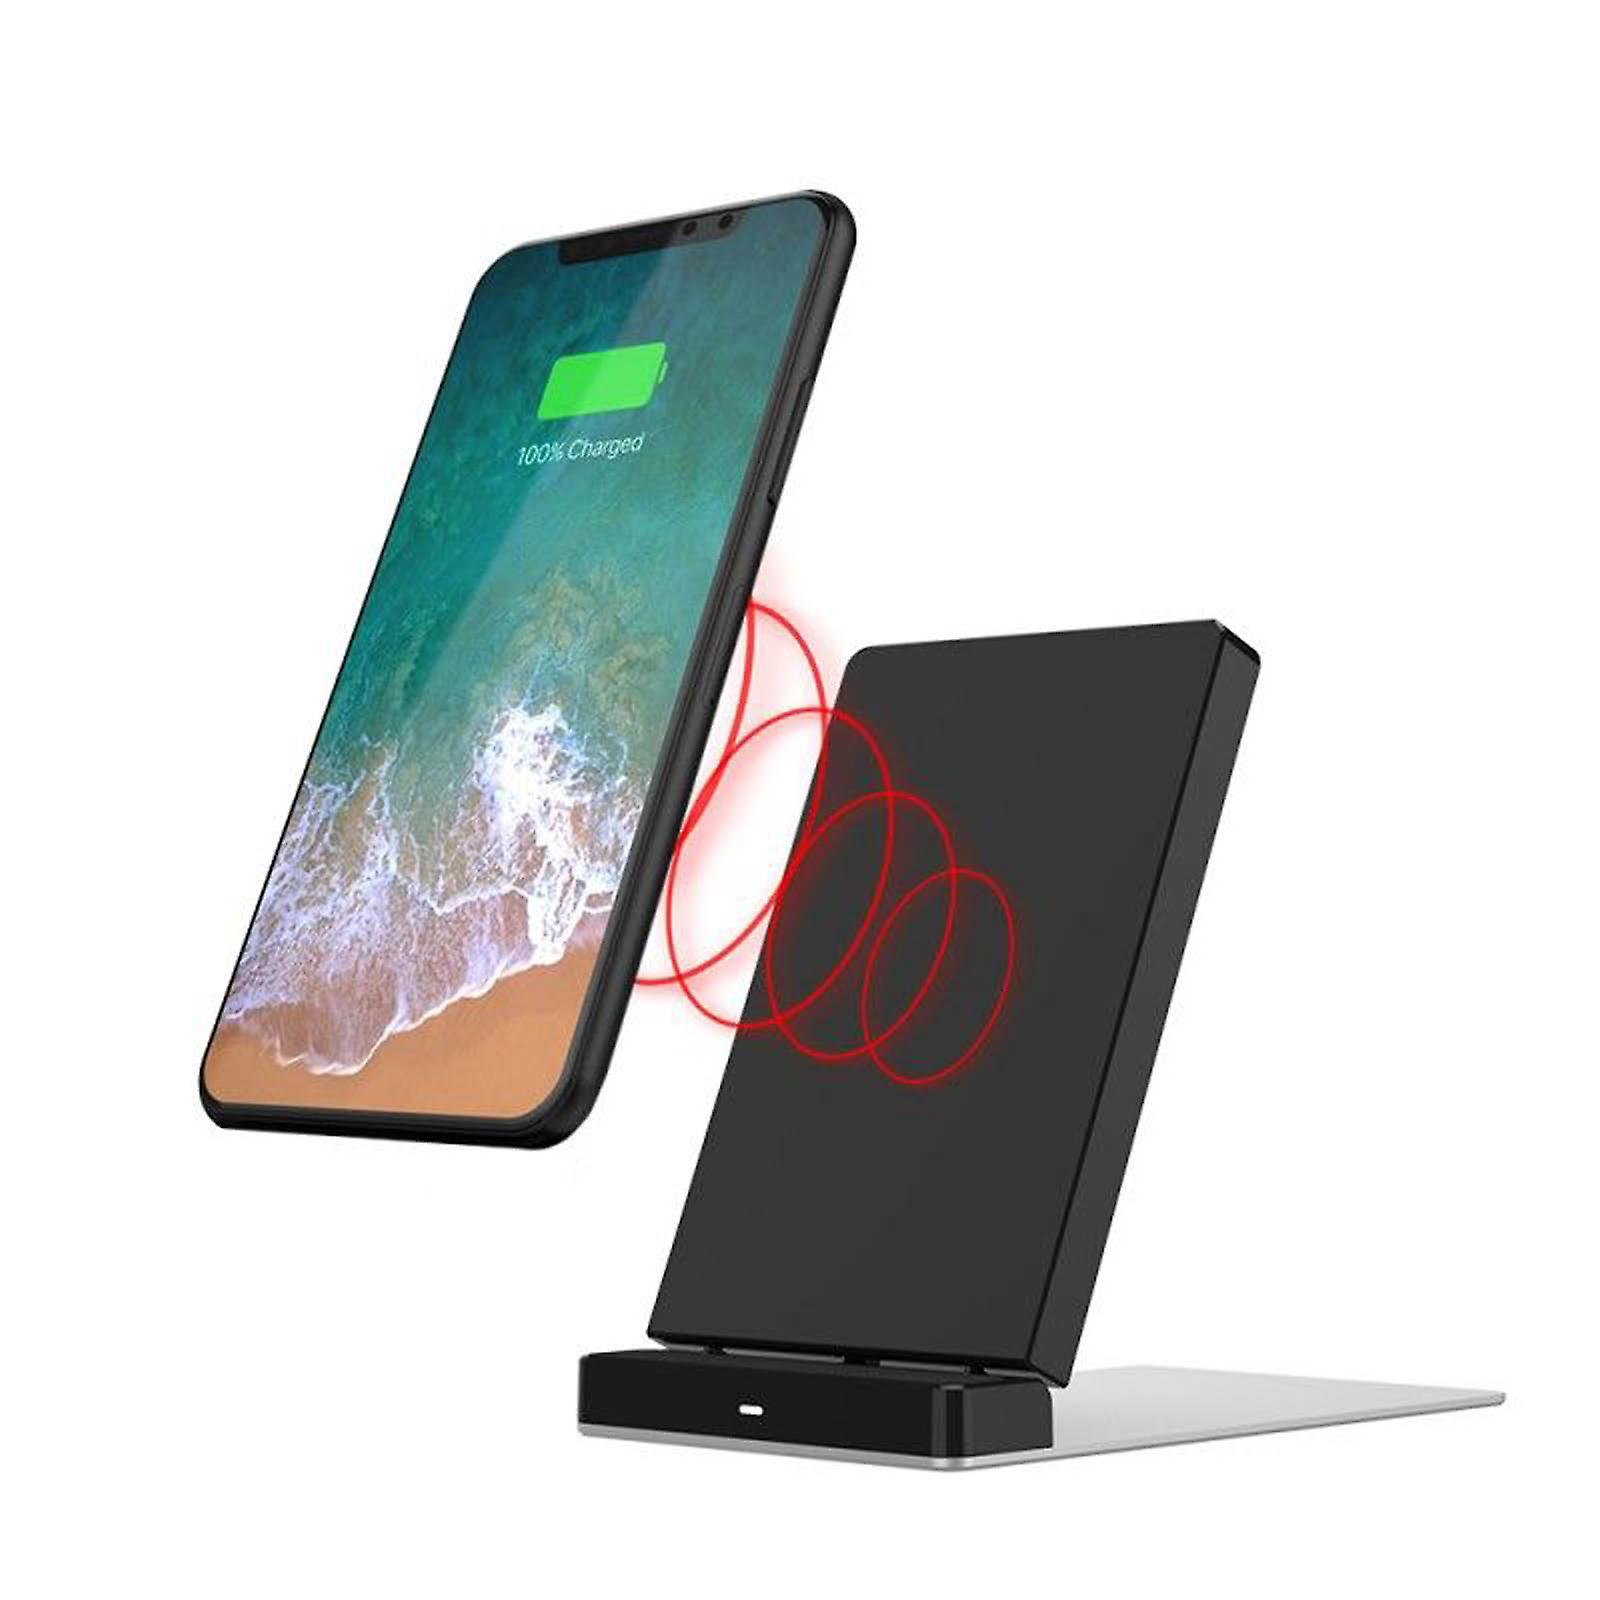 Chargeur induction smartphone tablette, recharge rapide. Inkax fils noirs